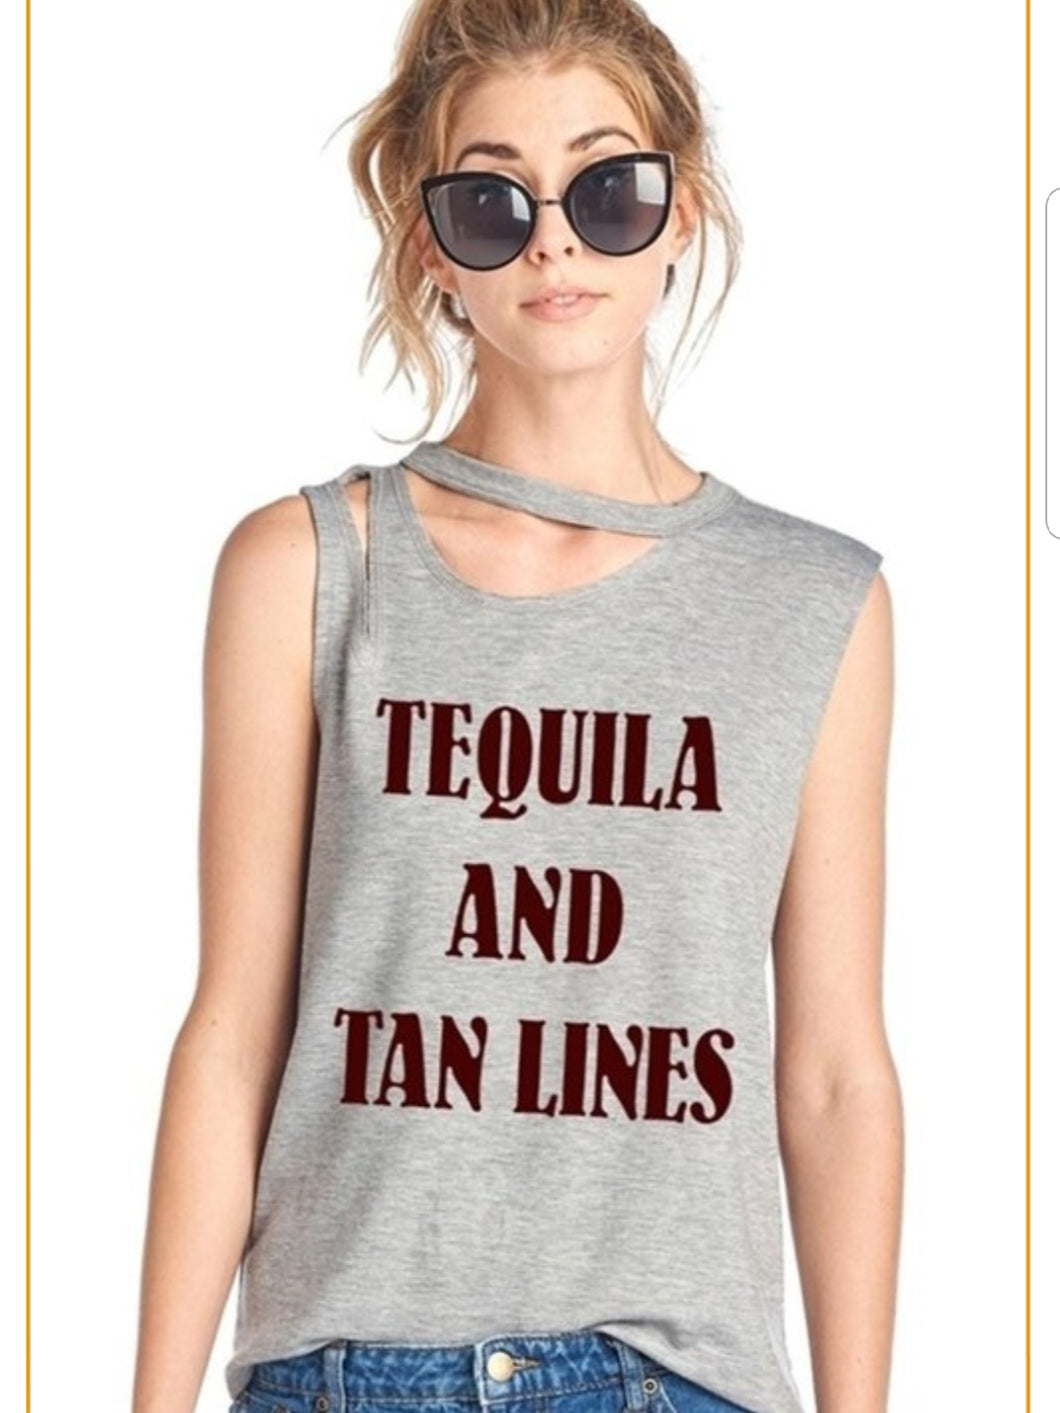 TEQUILA AND TAN LINES T-SHIRT